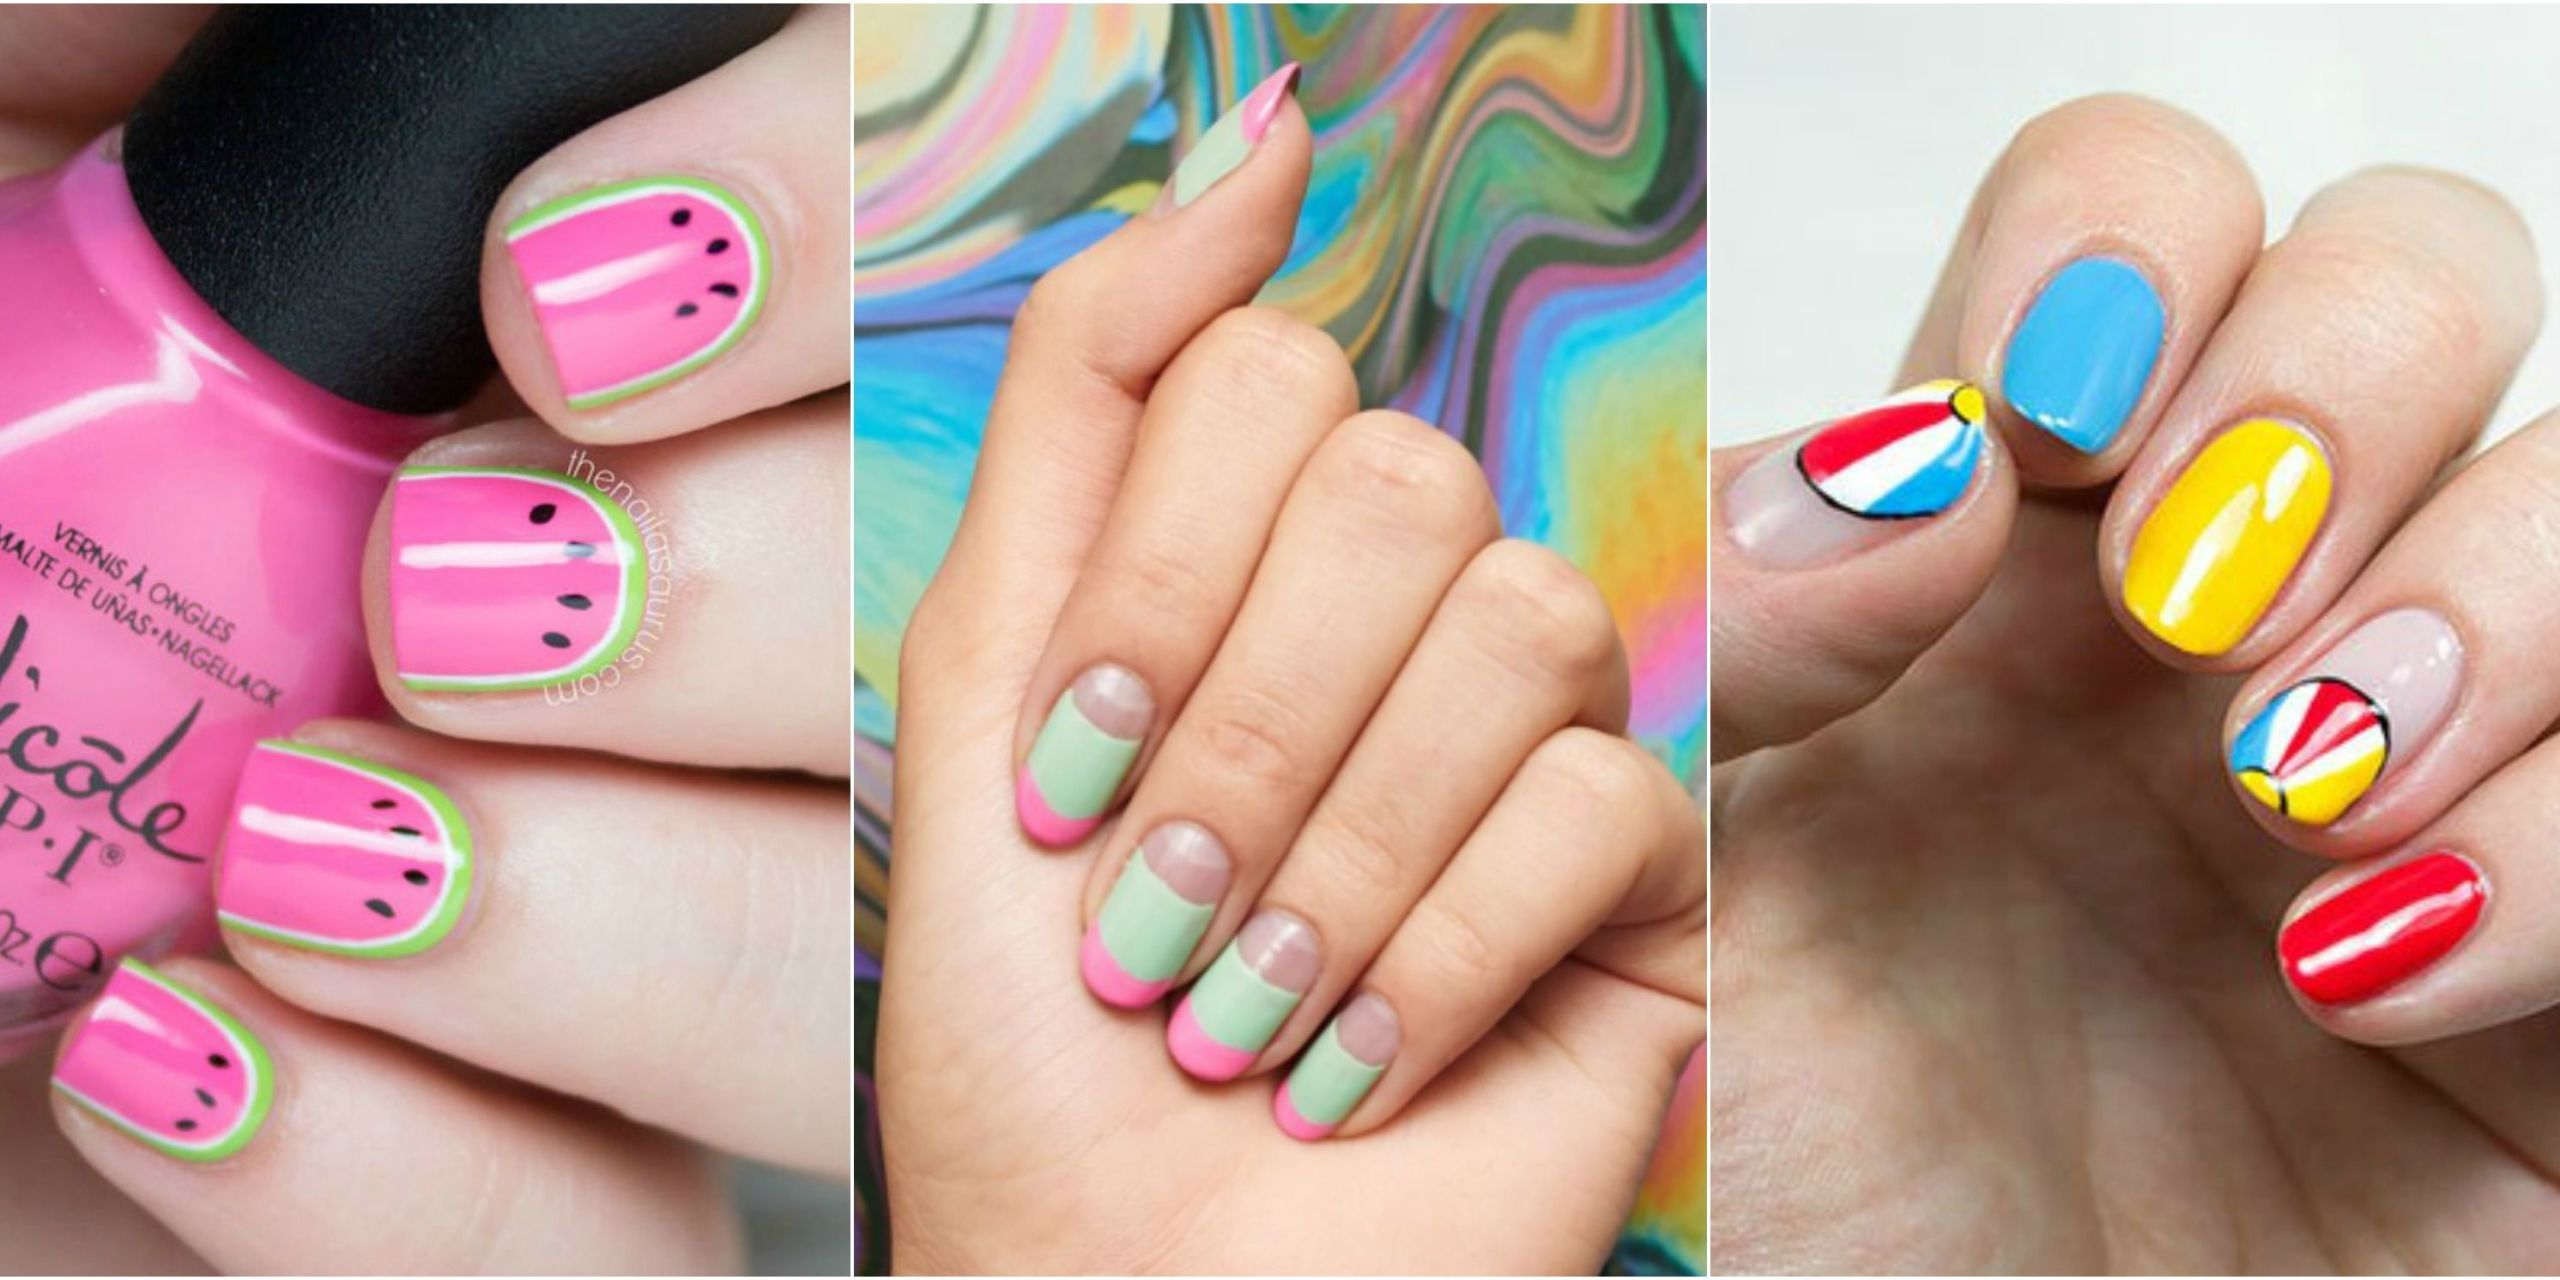 Your nails are ready to play in the sparkling sun. With these easy-to-replicate manicures nail are has never looked so cool for the summer. : nail decorating ideas - www.pureclipart.com